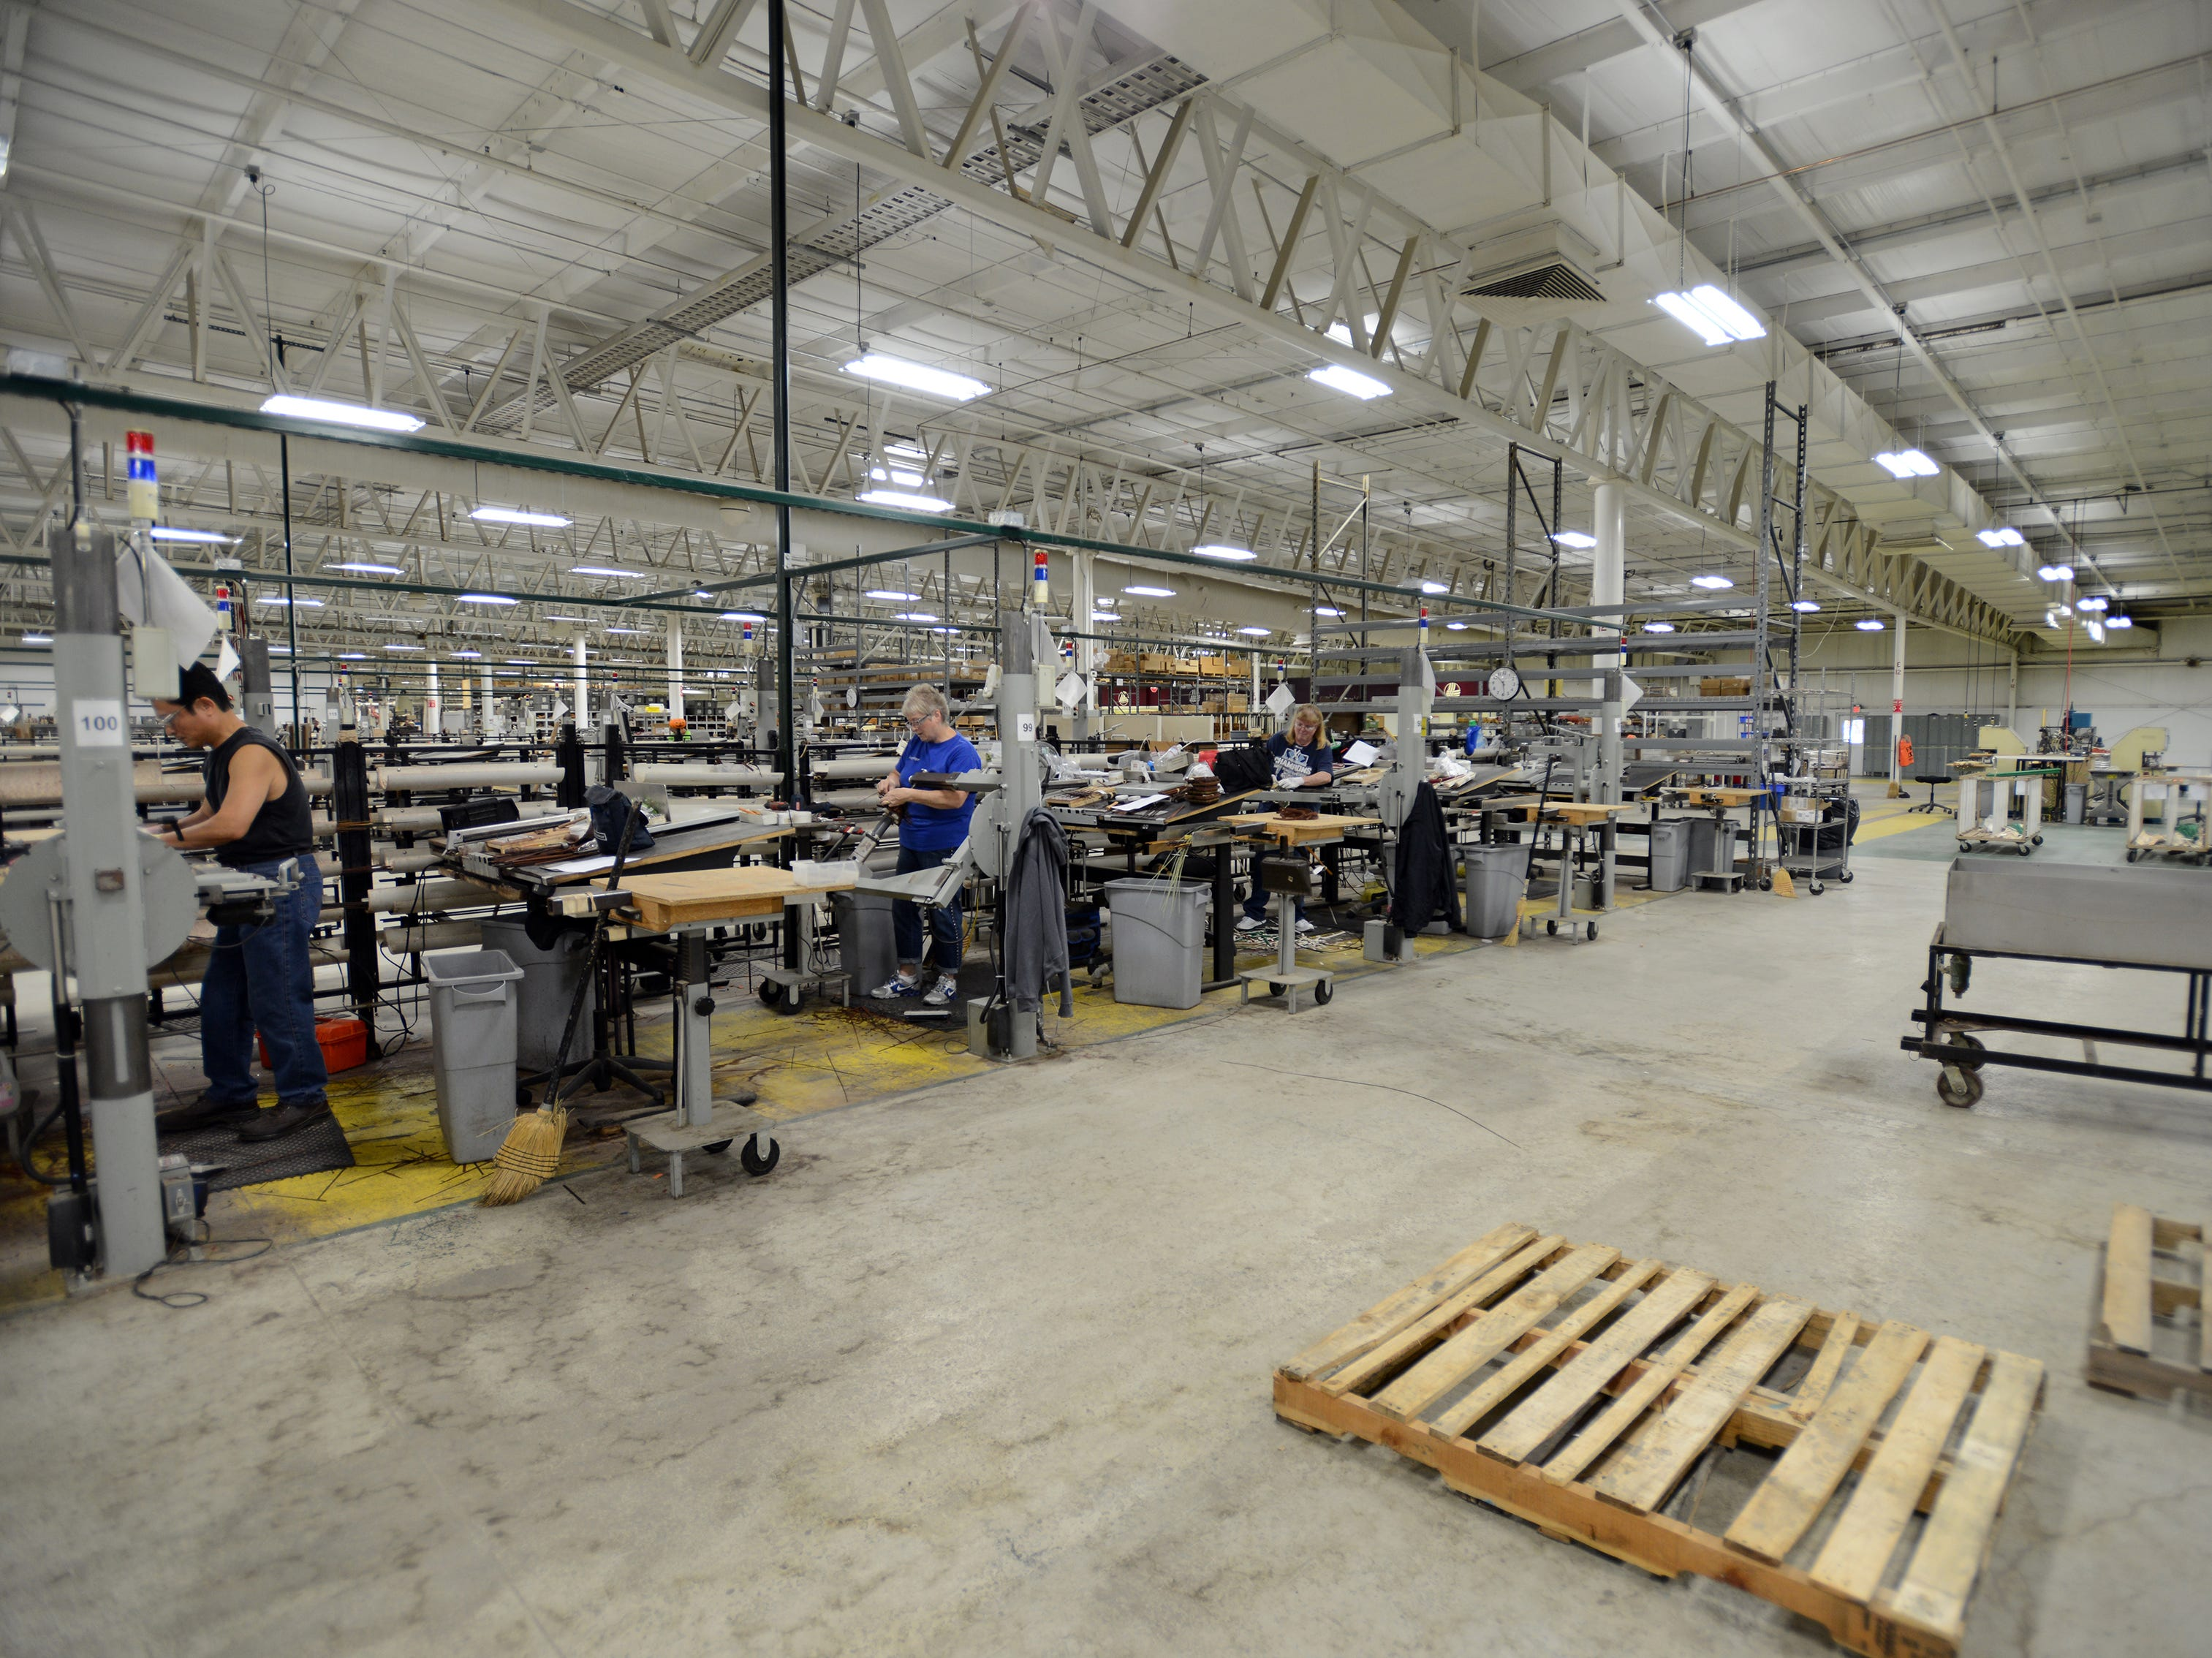 Workers assemble baskets at Longaberger's Frazeysburg manufacturing facility.